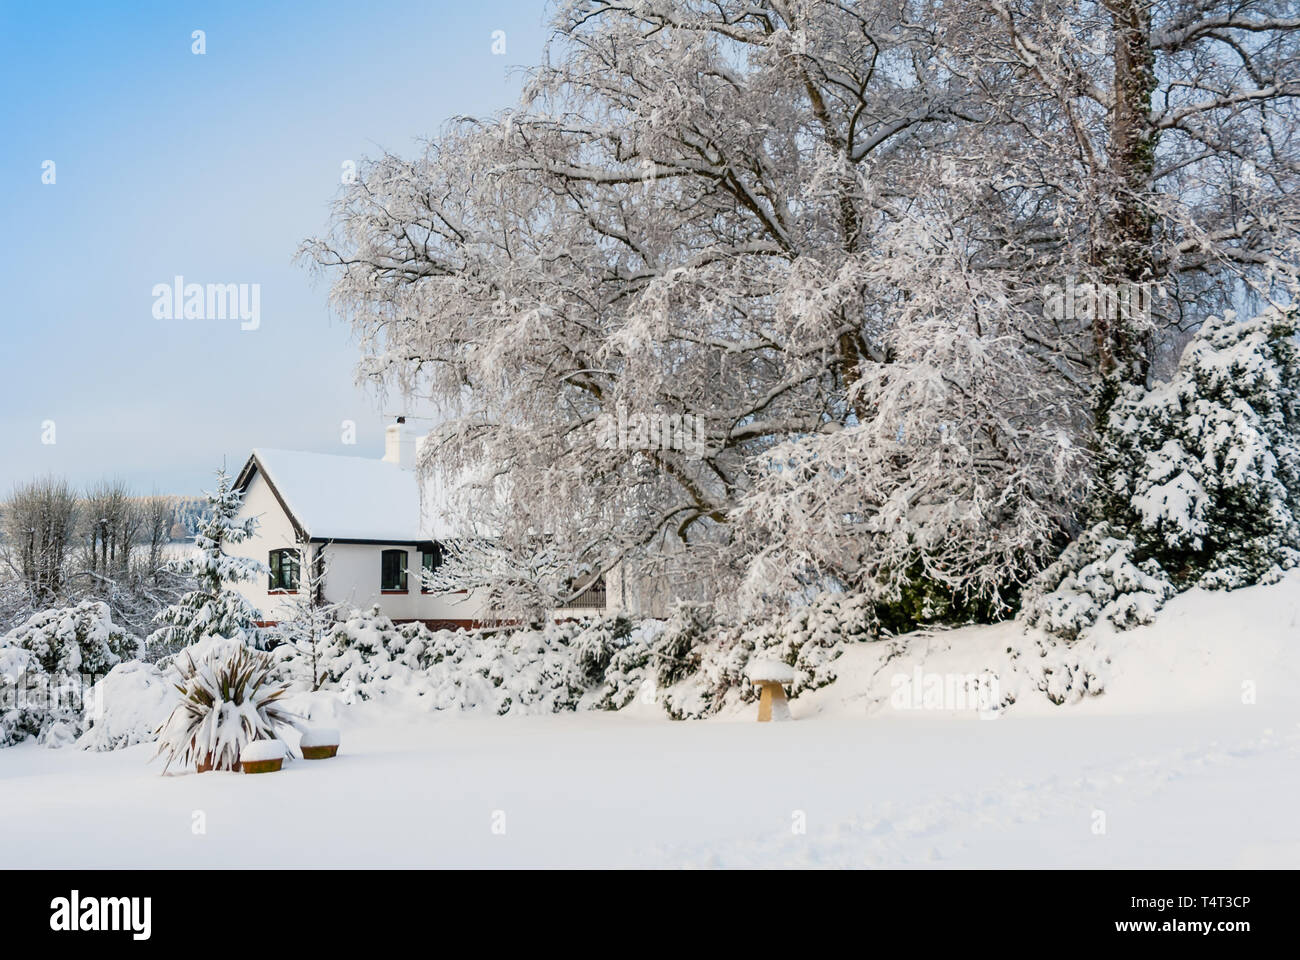 A private garden in Devon covered in snow in the depths of winter. - Stock Image